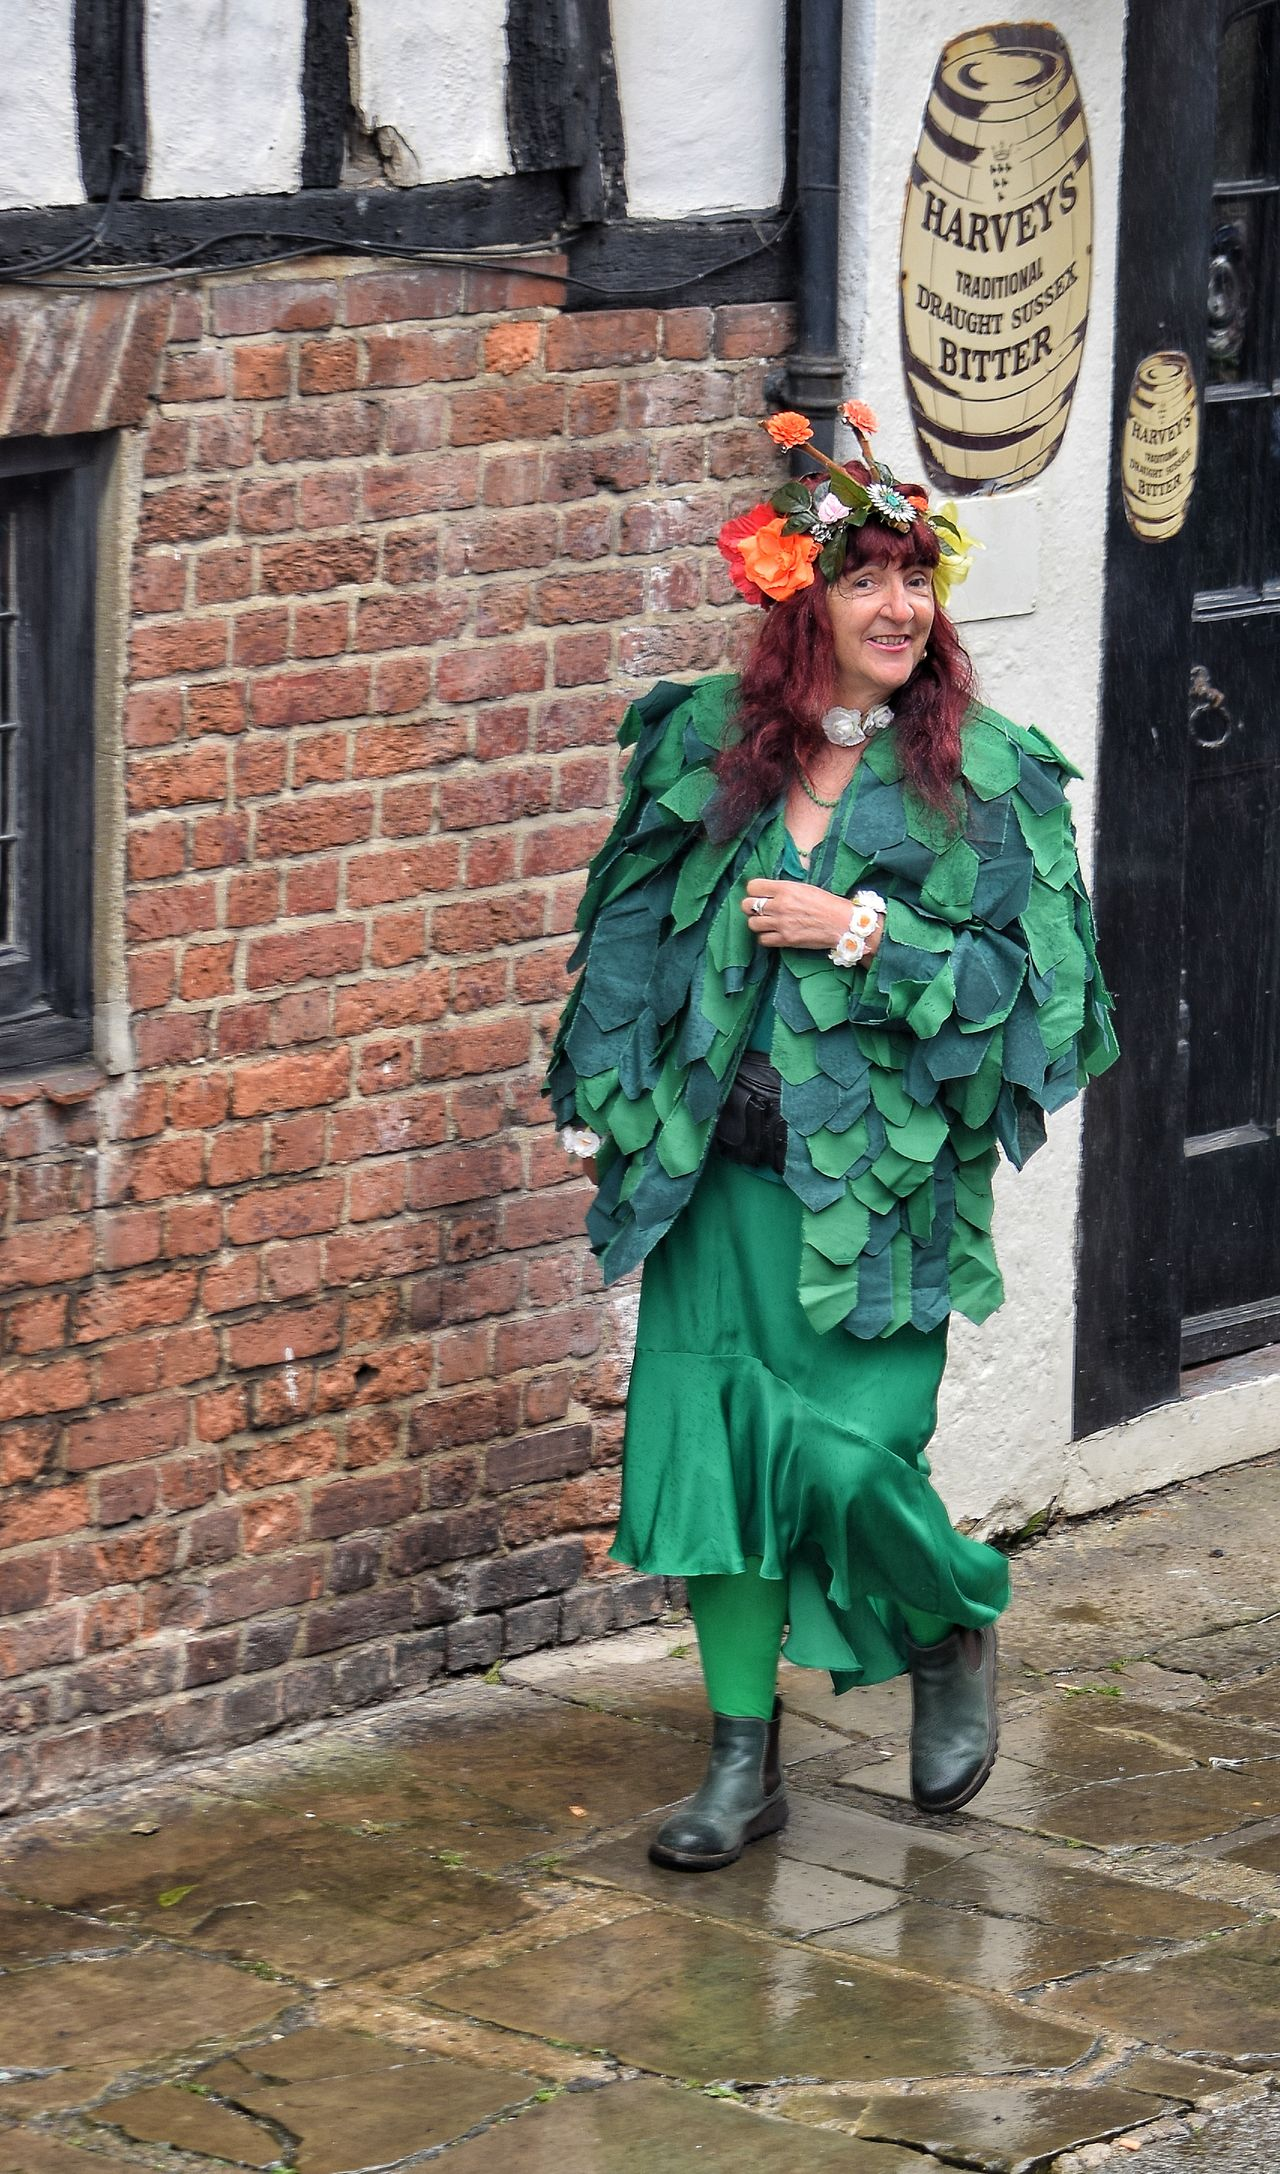 Jack In The Green Festival Jack In The Green May Day 2017 Hastings May Day East Sussex Green Celebration Outdoors Standing Green Color One Person Day Adult People Portrait Focus On Foreground Headdress Adult Carnival - Celebration Event Live For The Story Only Women Fashion One Woman Only Tradition